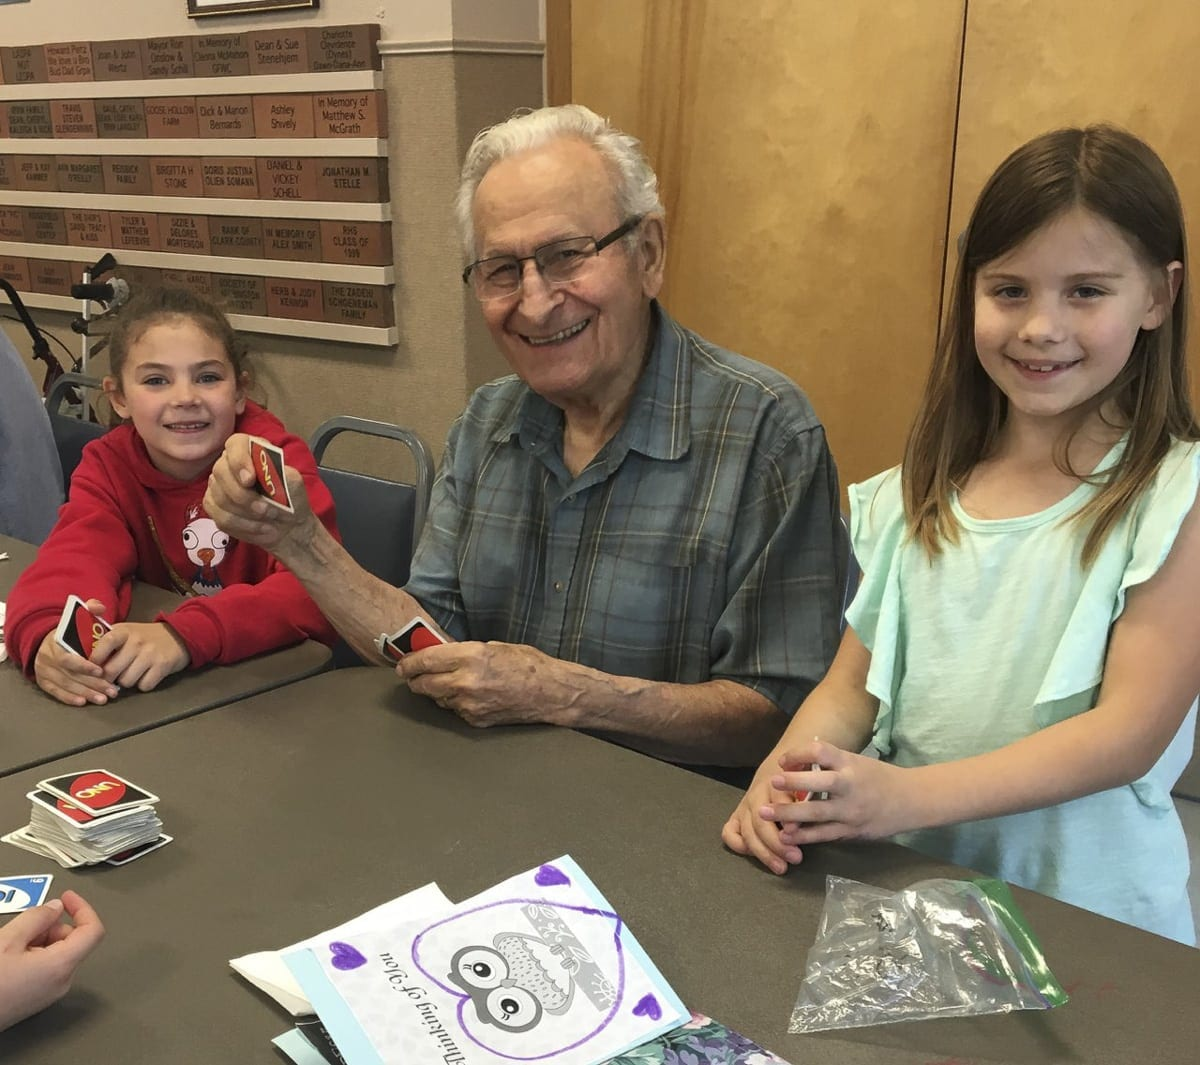 Union Ridge Elementary School second graders Lizzy Bloom (at left) and Clara Bruguier play cards with Ken Carson at Ridgefield's Community Center. Photo courtesy of Ridgefield School District